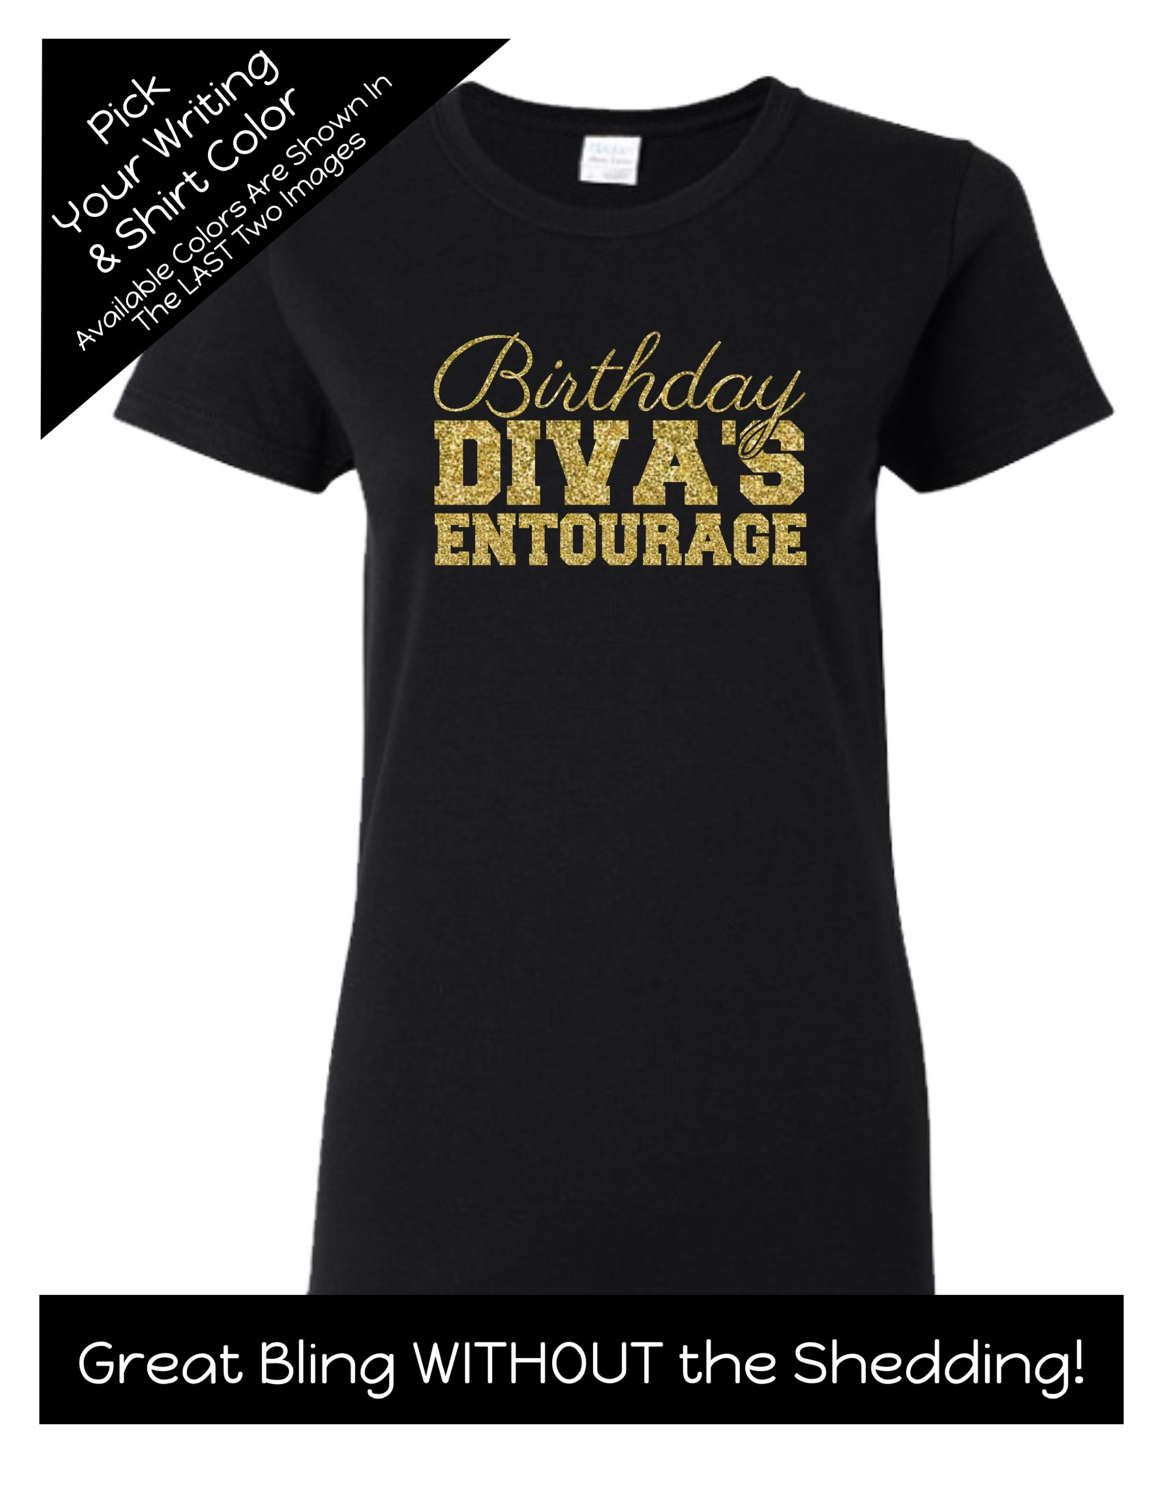 cb08264e1 Birthday Diva's Entourage Script Shirt - Personalize the Colors - Match the  Birthday Girl - Birthday Party by MagicalMemoriesbyJ on Etsy